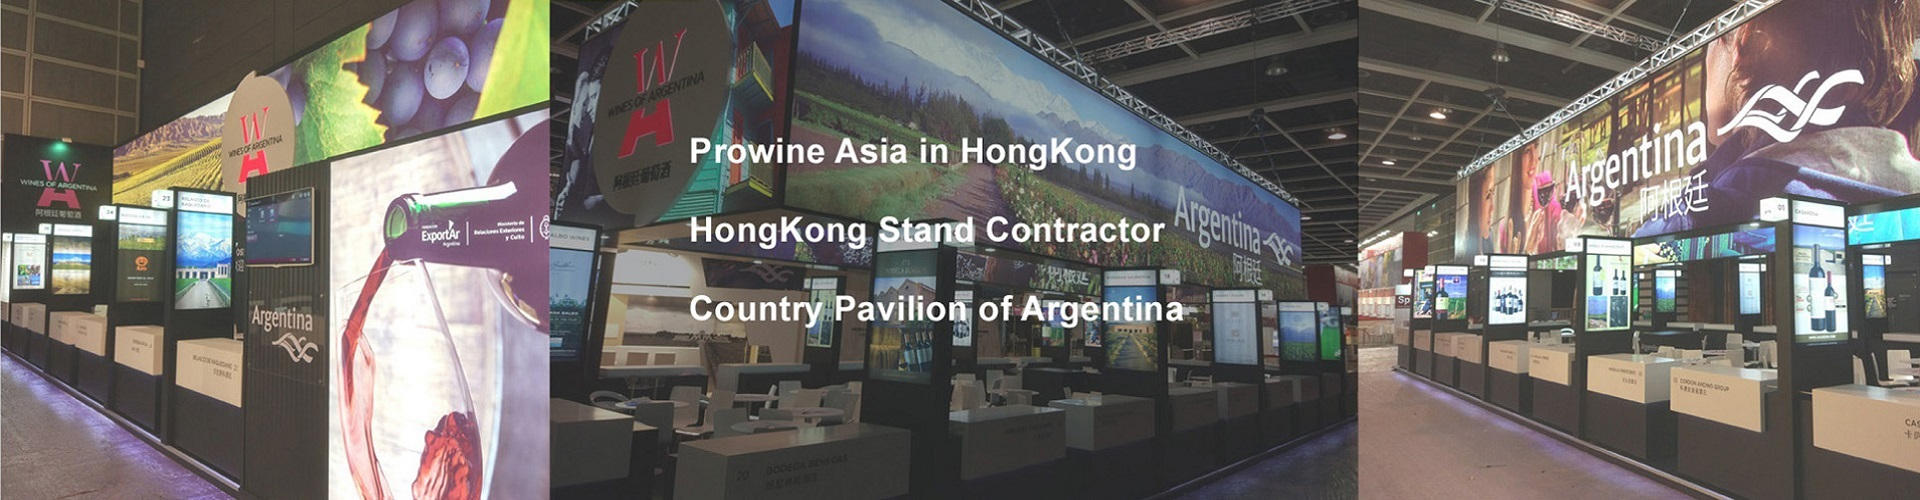 Prowine Asia/Hongkong stand builder